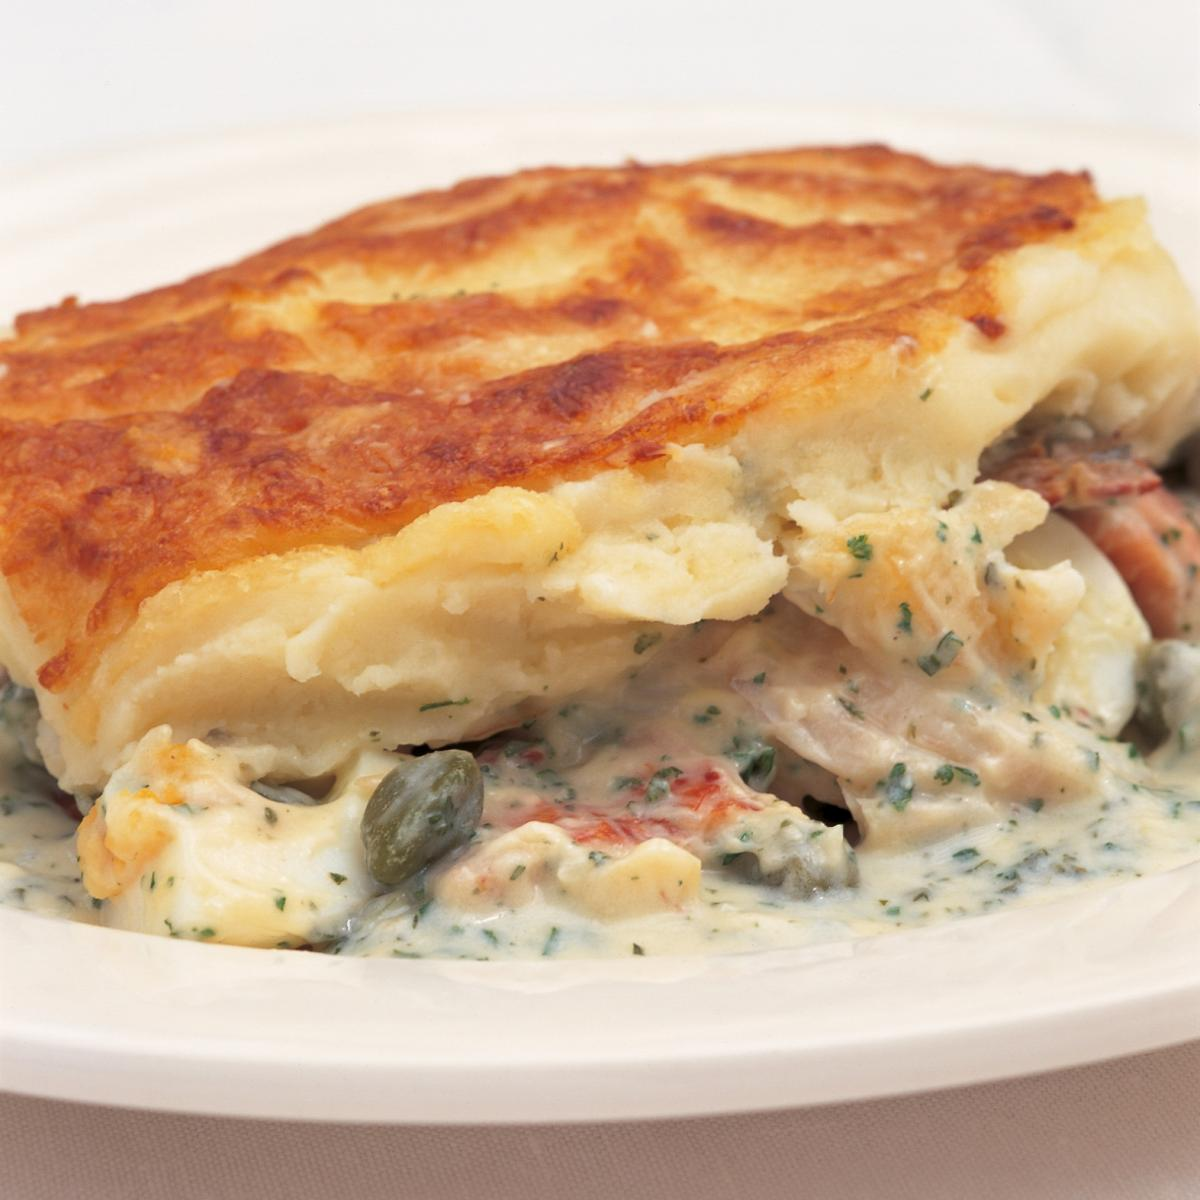 A picture of Delia's Luxury Smoked-fish Pie recipe